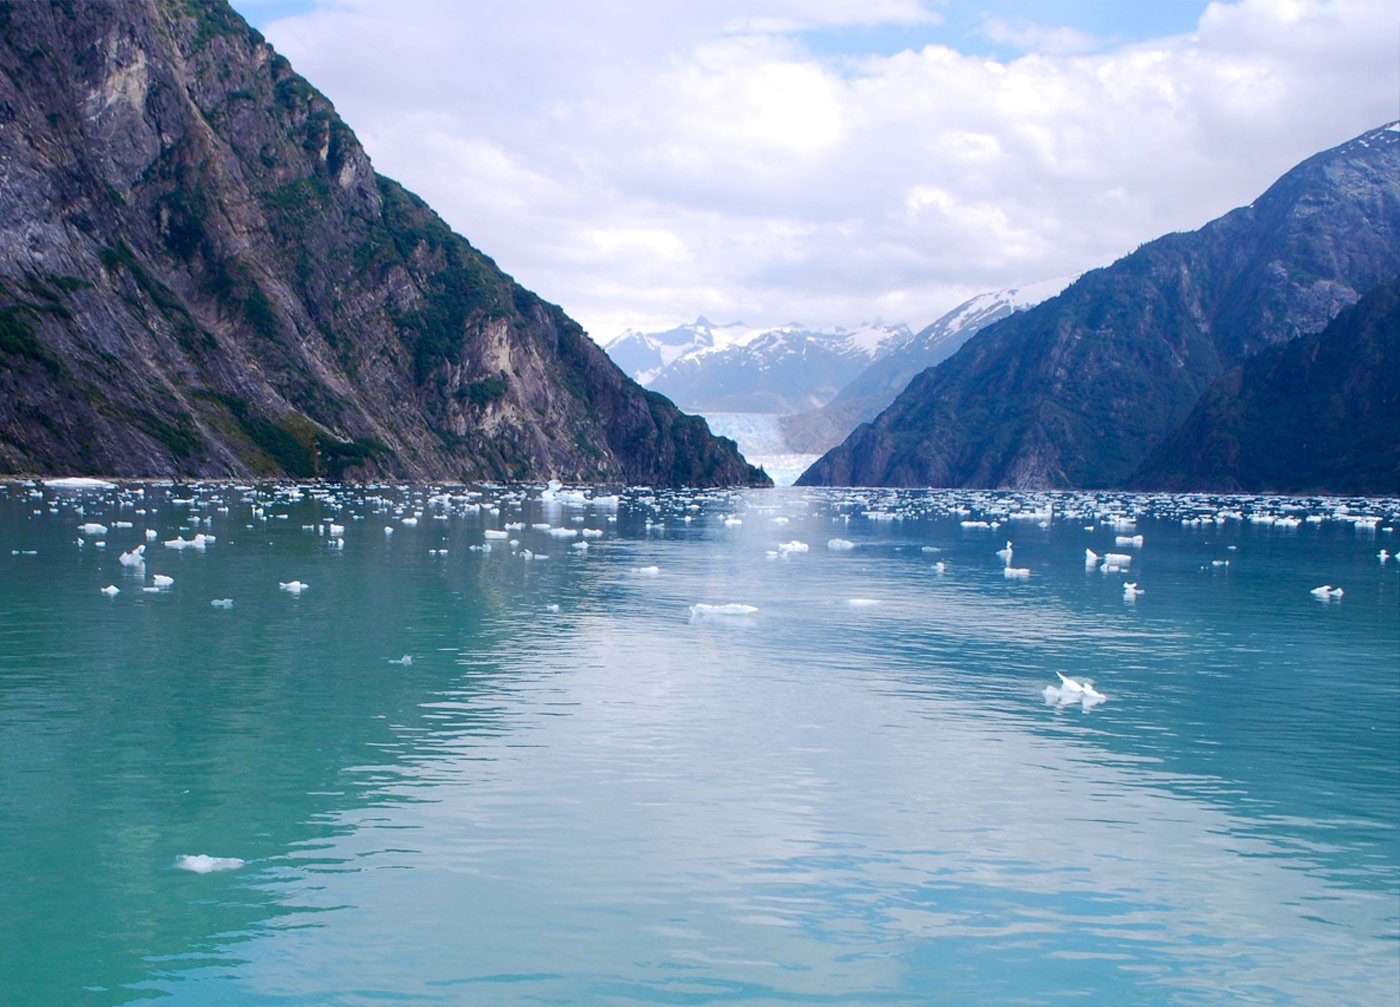 breathtaking views of the majestic sawyer glaciers in the tracy arm fjord